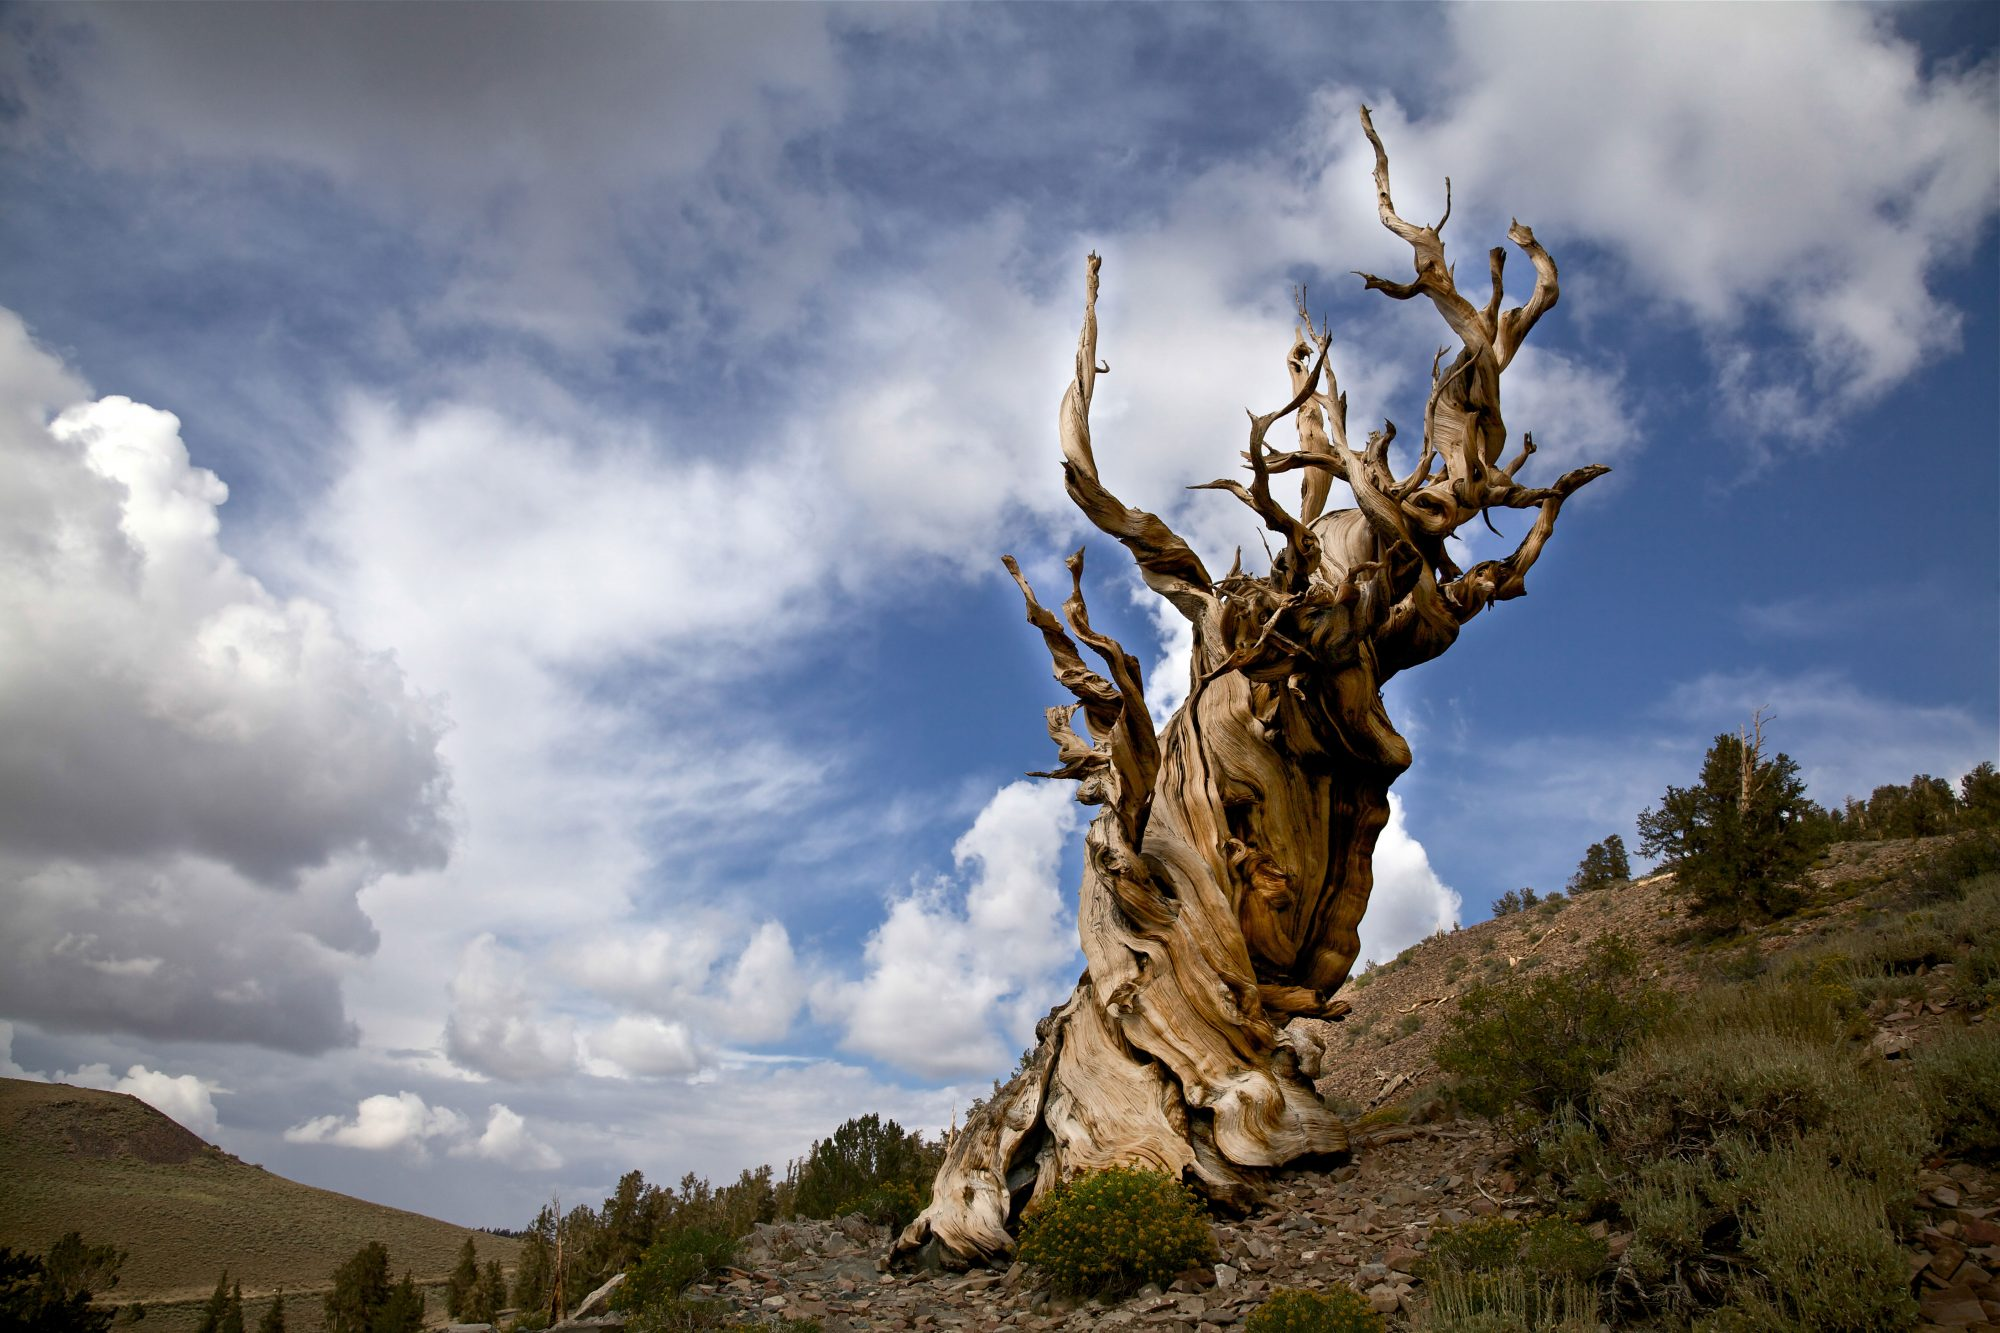 Methuselah tree on a hillside